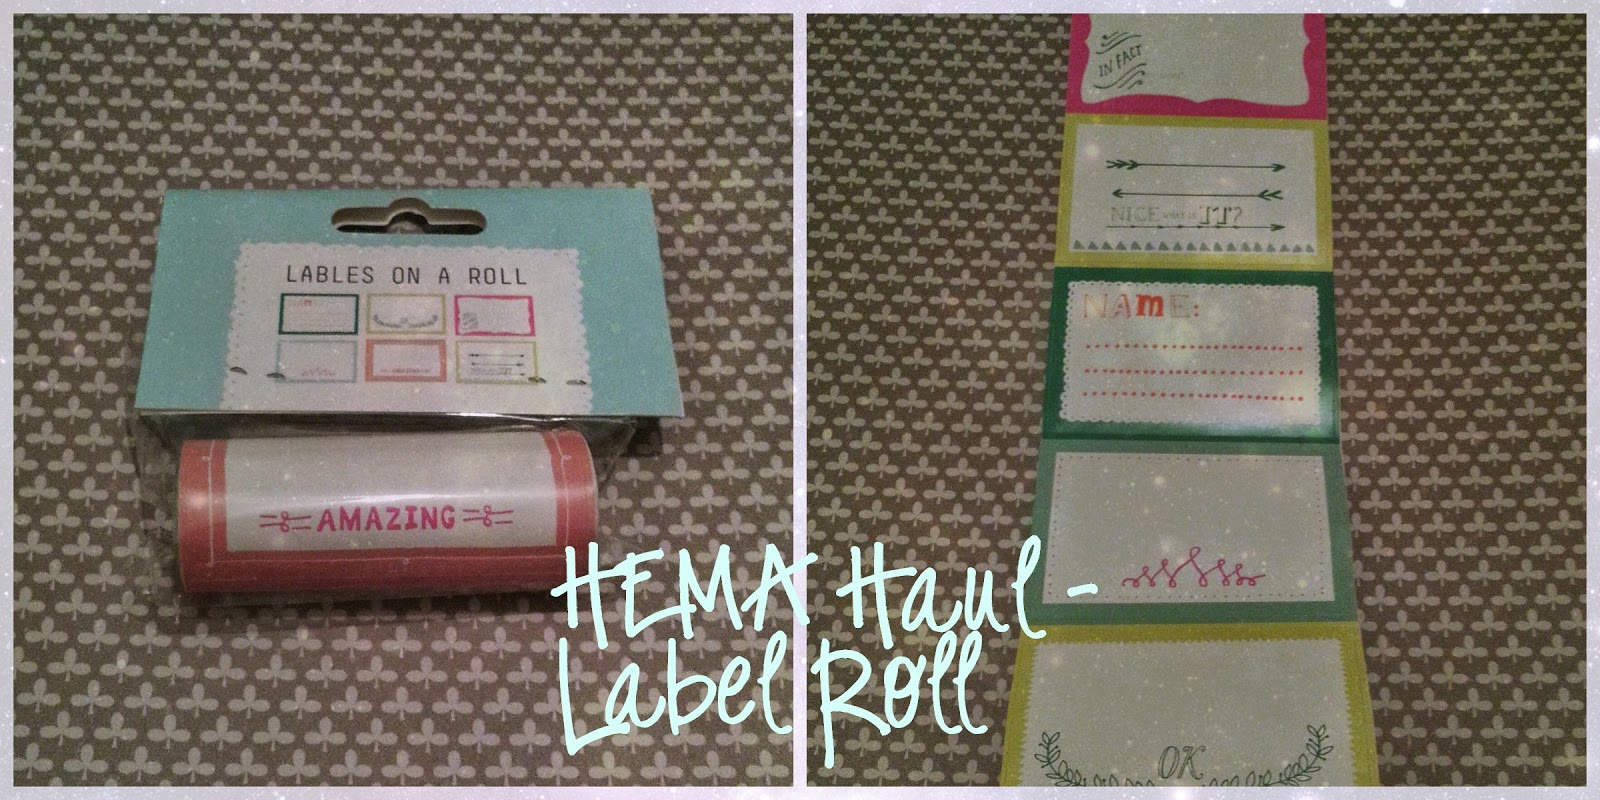 HEMA sticky labels